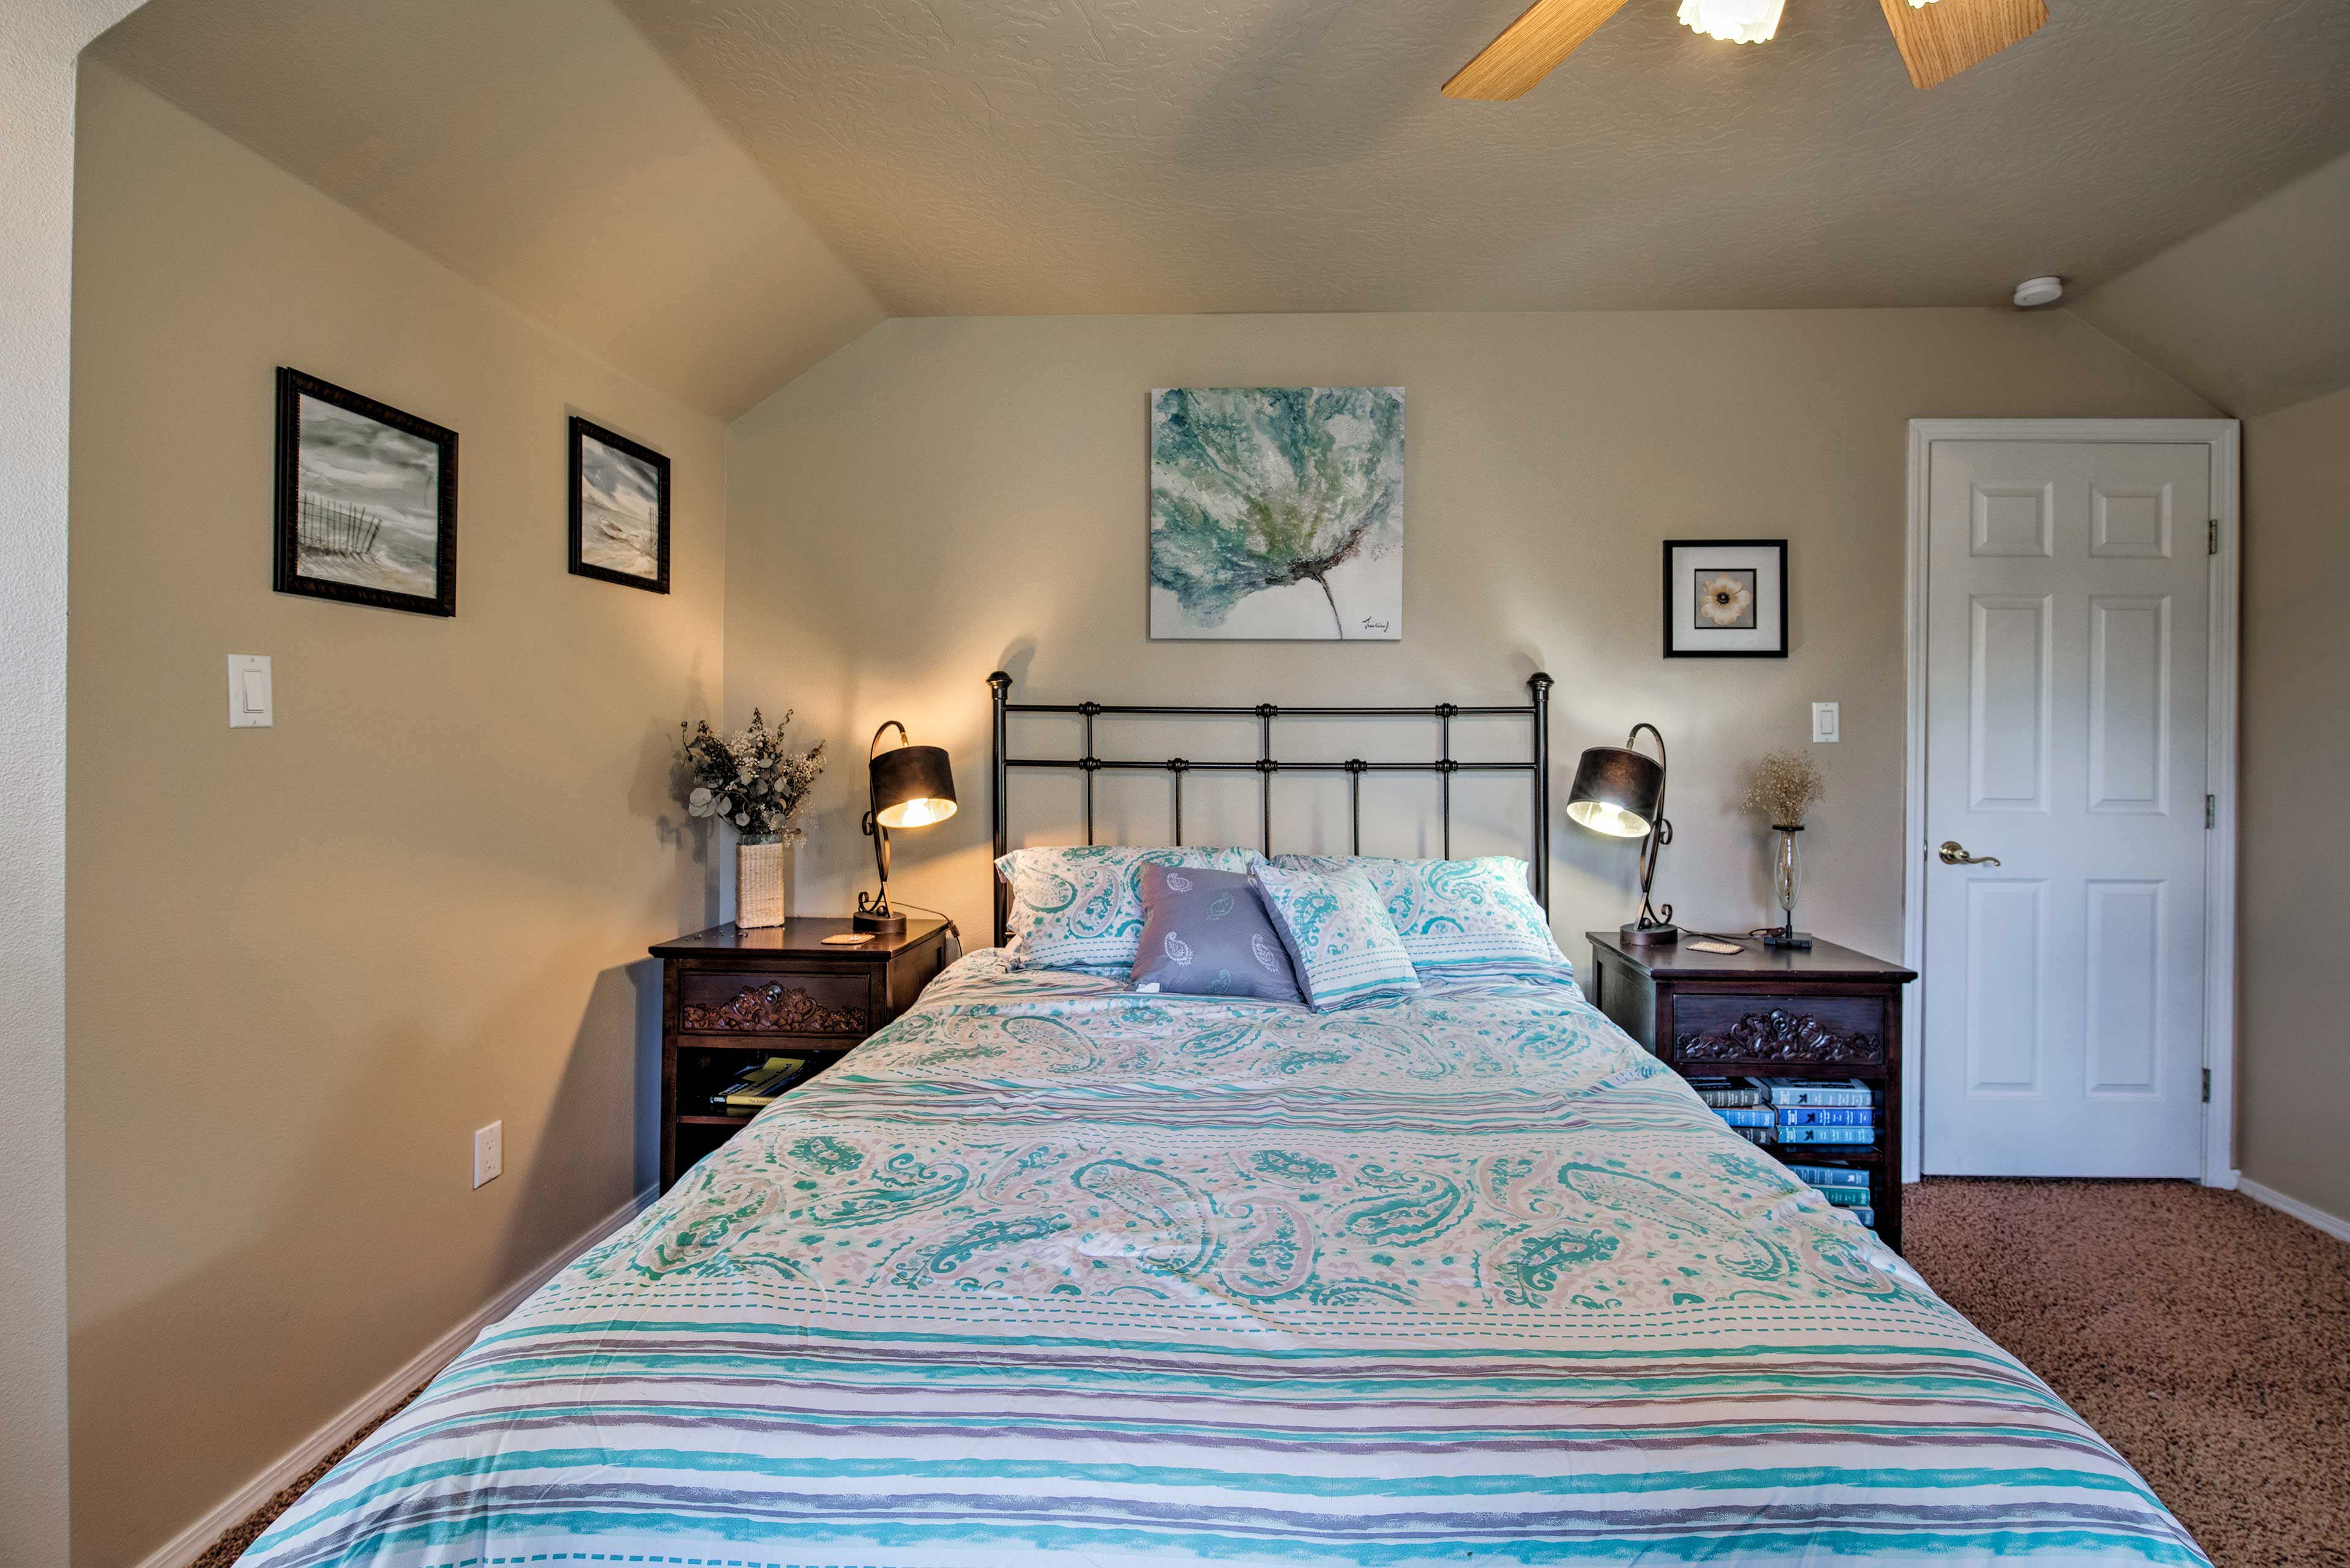 The third bedroom offers an additional queen-sized bed for 2.